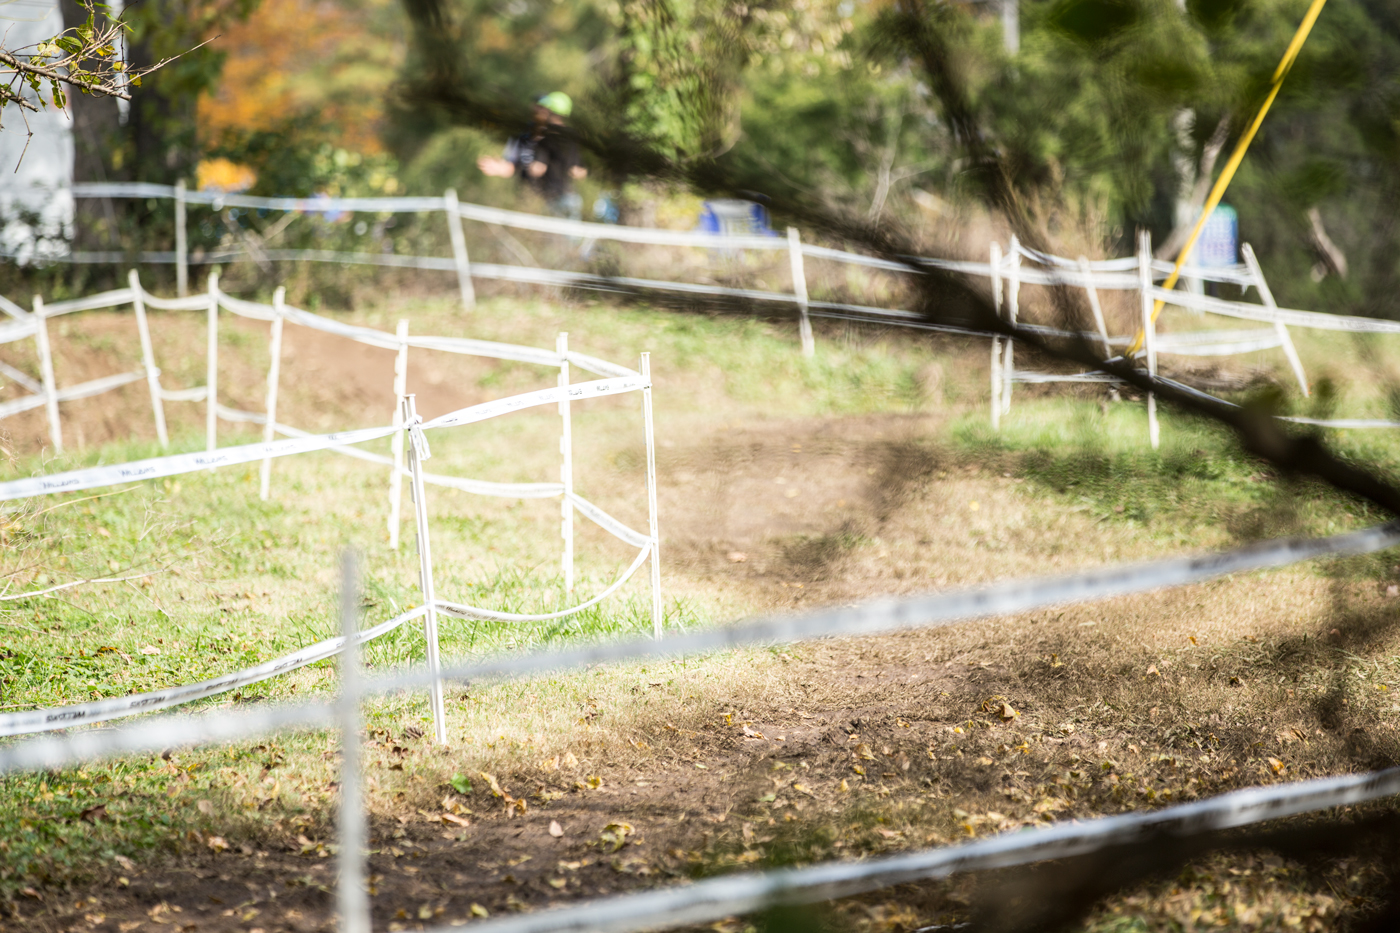 It may sound silly, but every time I go to a cyclocross event, I'm so happy and excited by the fact that some people took the time to create and map a course for us to ride on.I know that's the whole point of signing up for a race, but man does it make me feel lucky and giddy to get on it and practice!